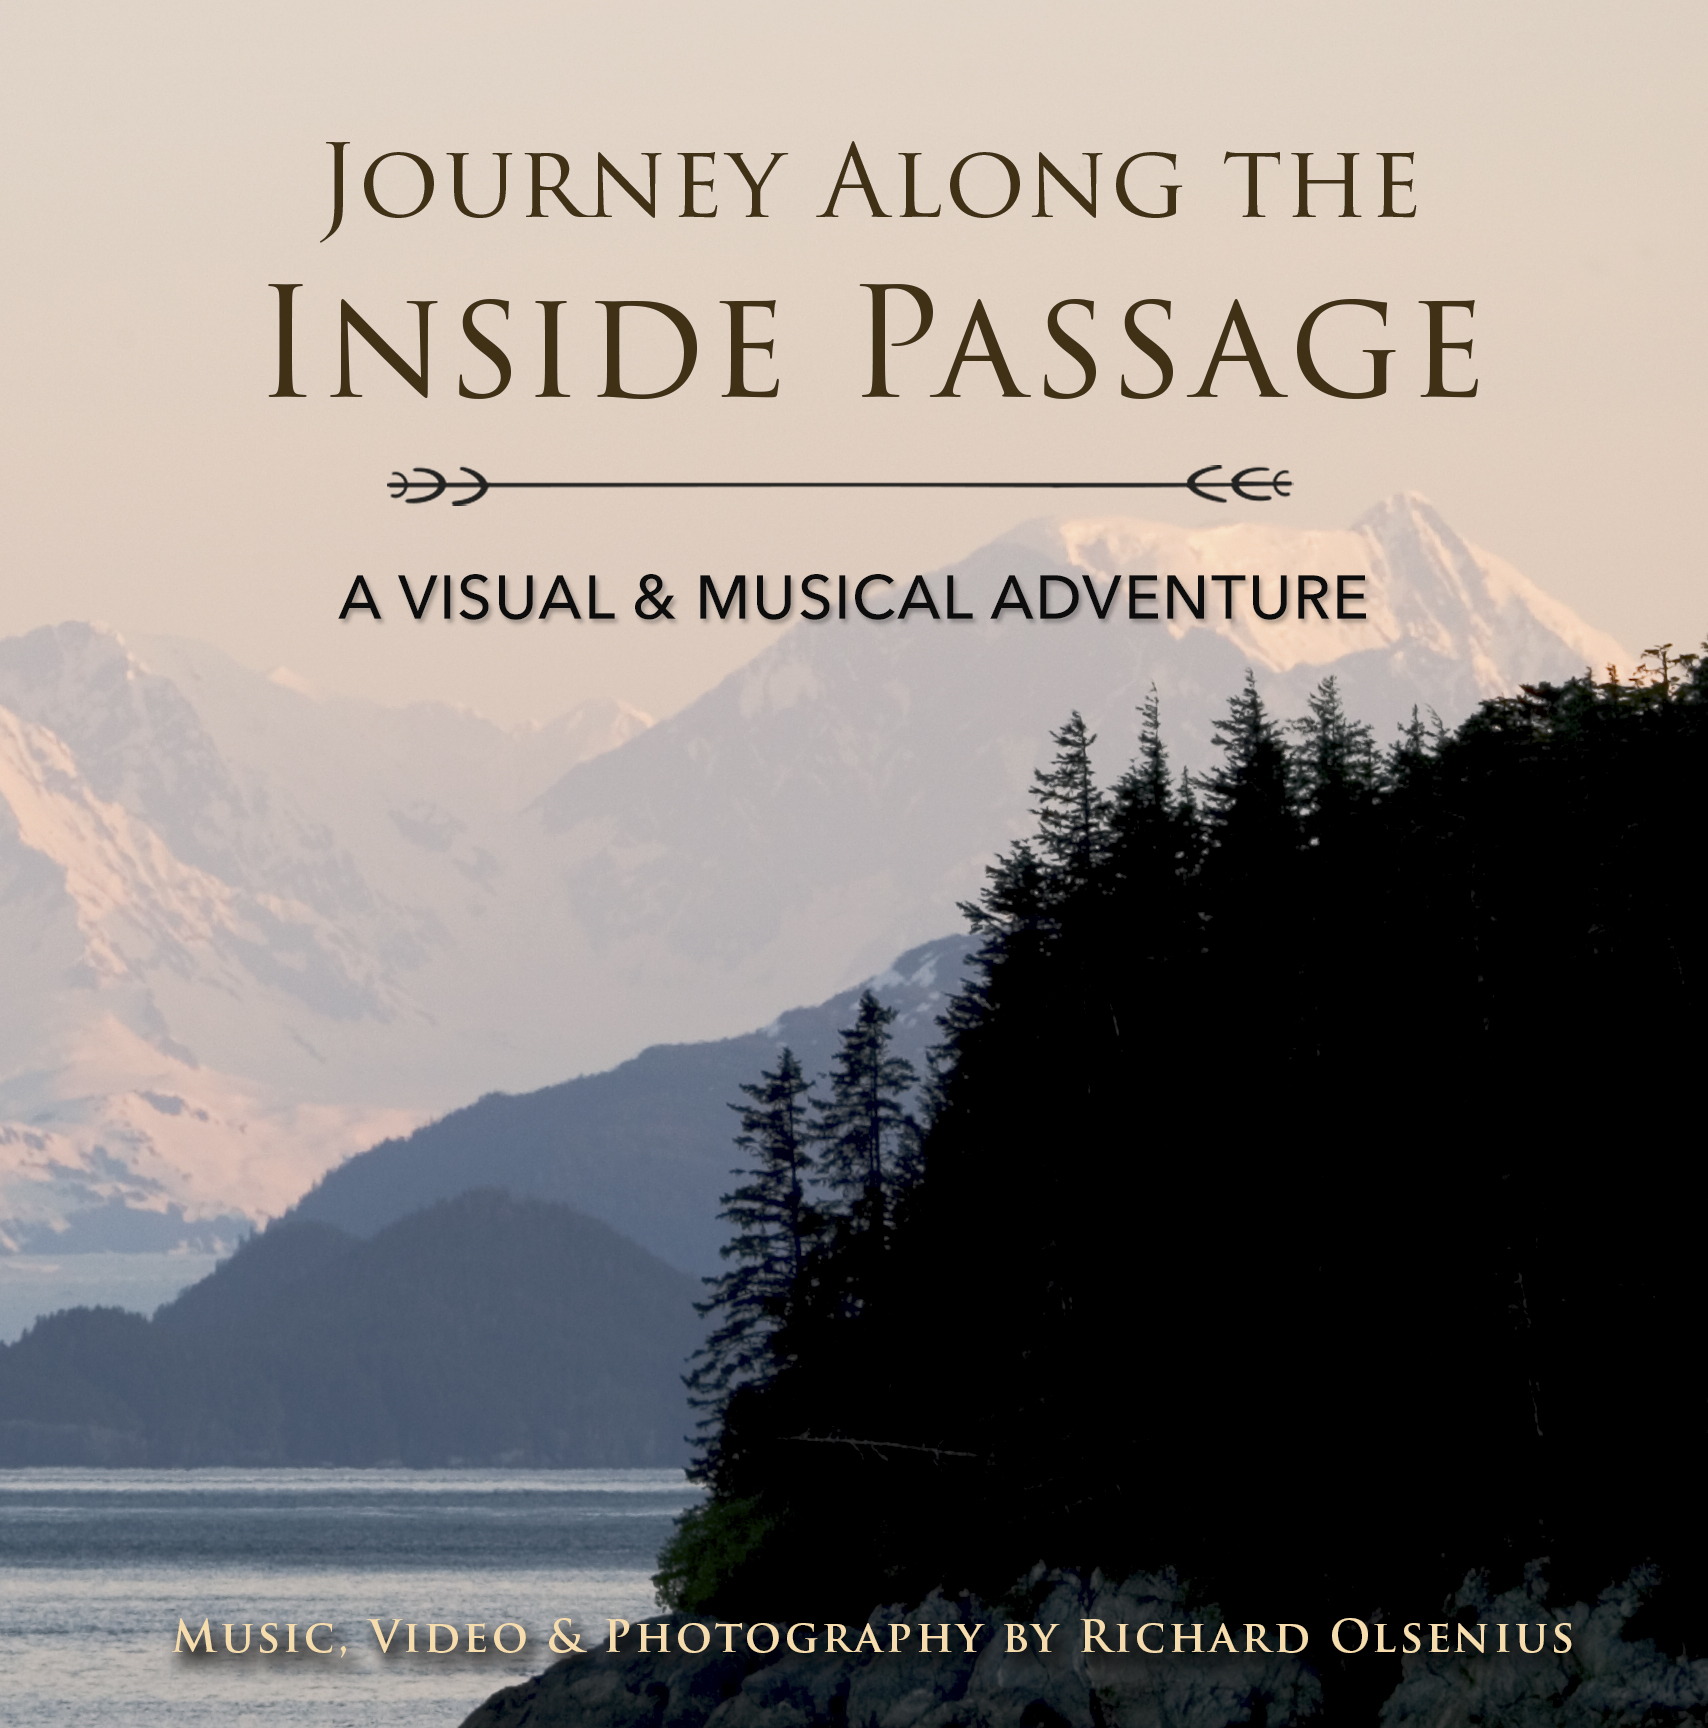 INSIDE PASSAGE MUSIC ALBUM